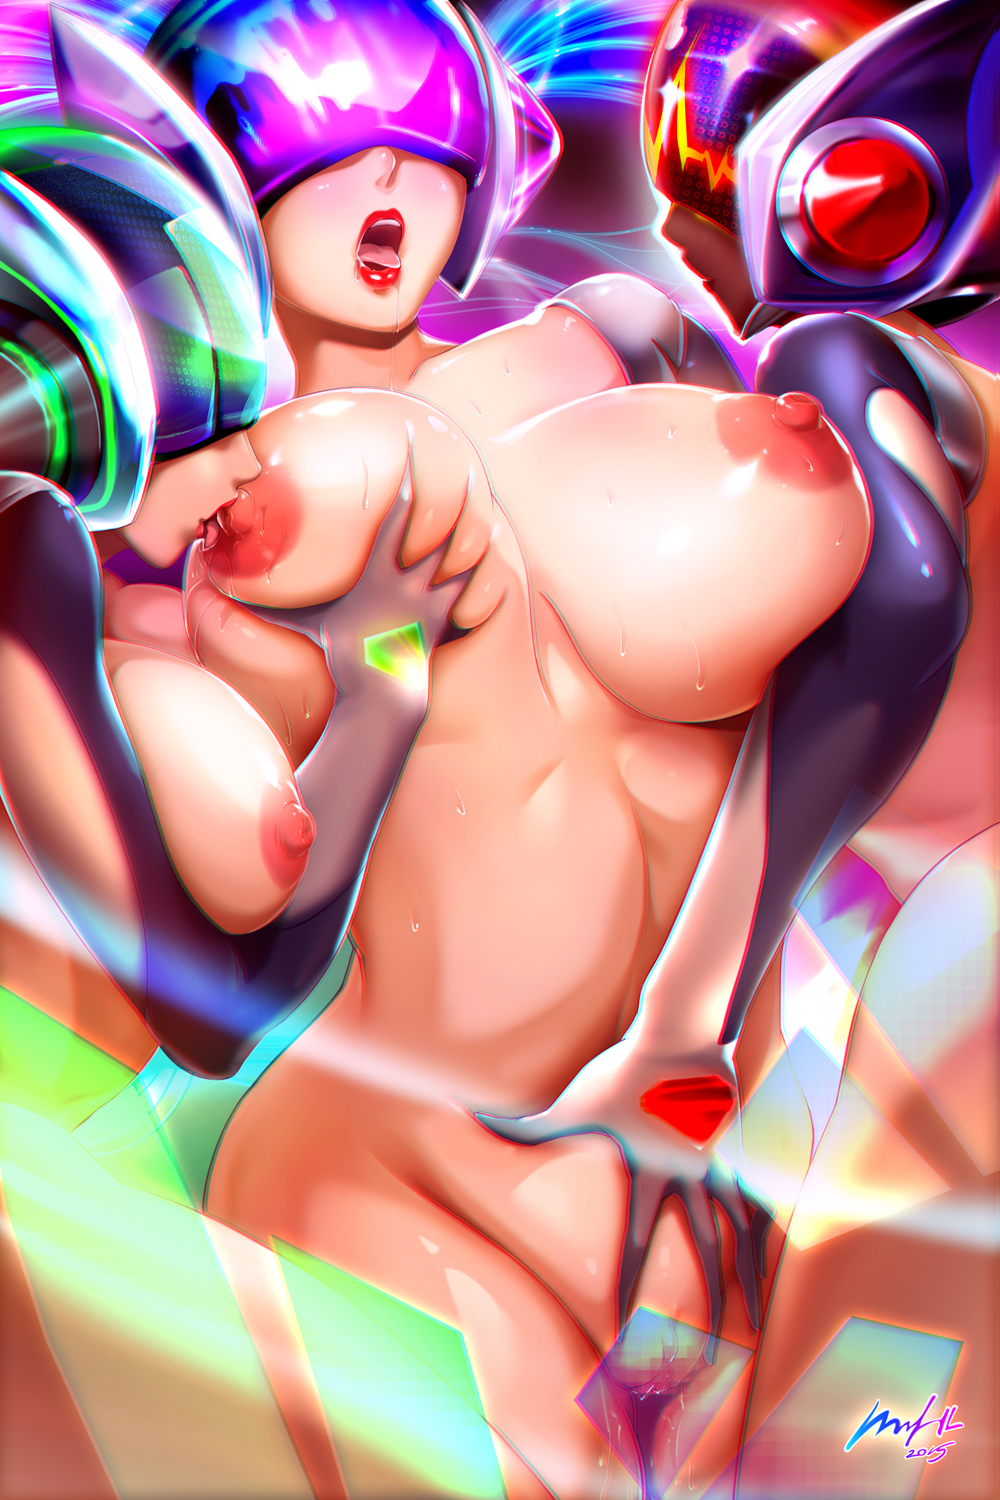 League of legends fanfic porn adult pic